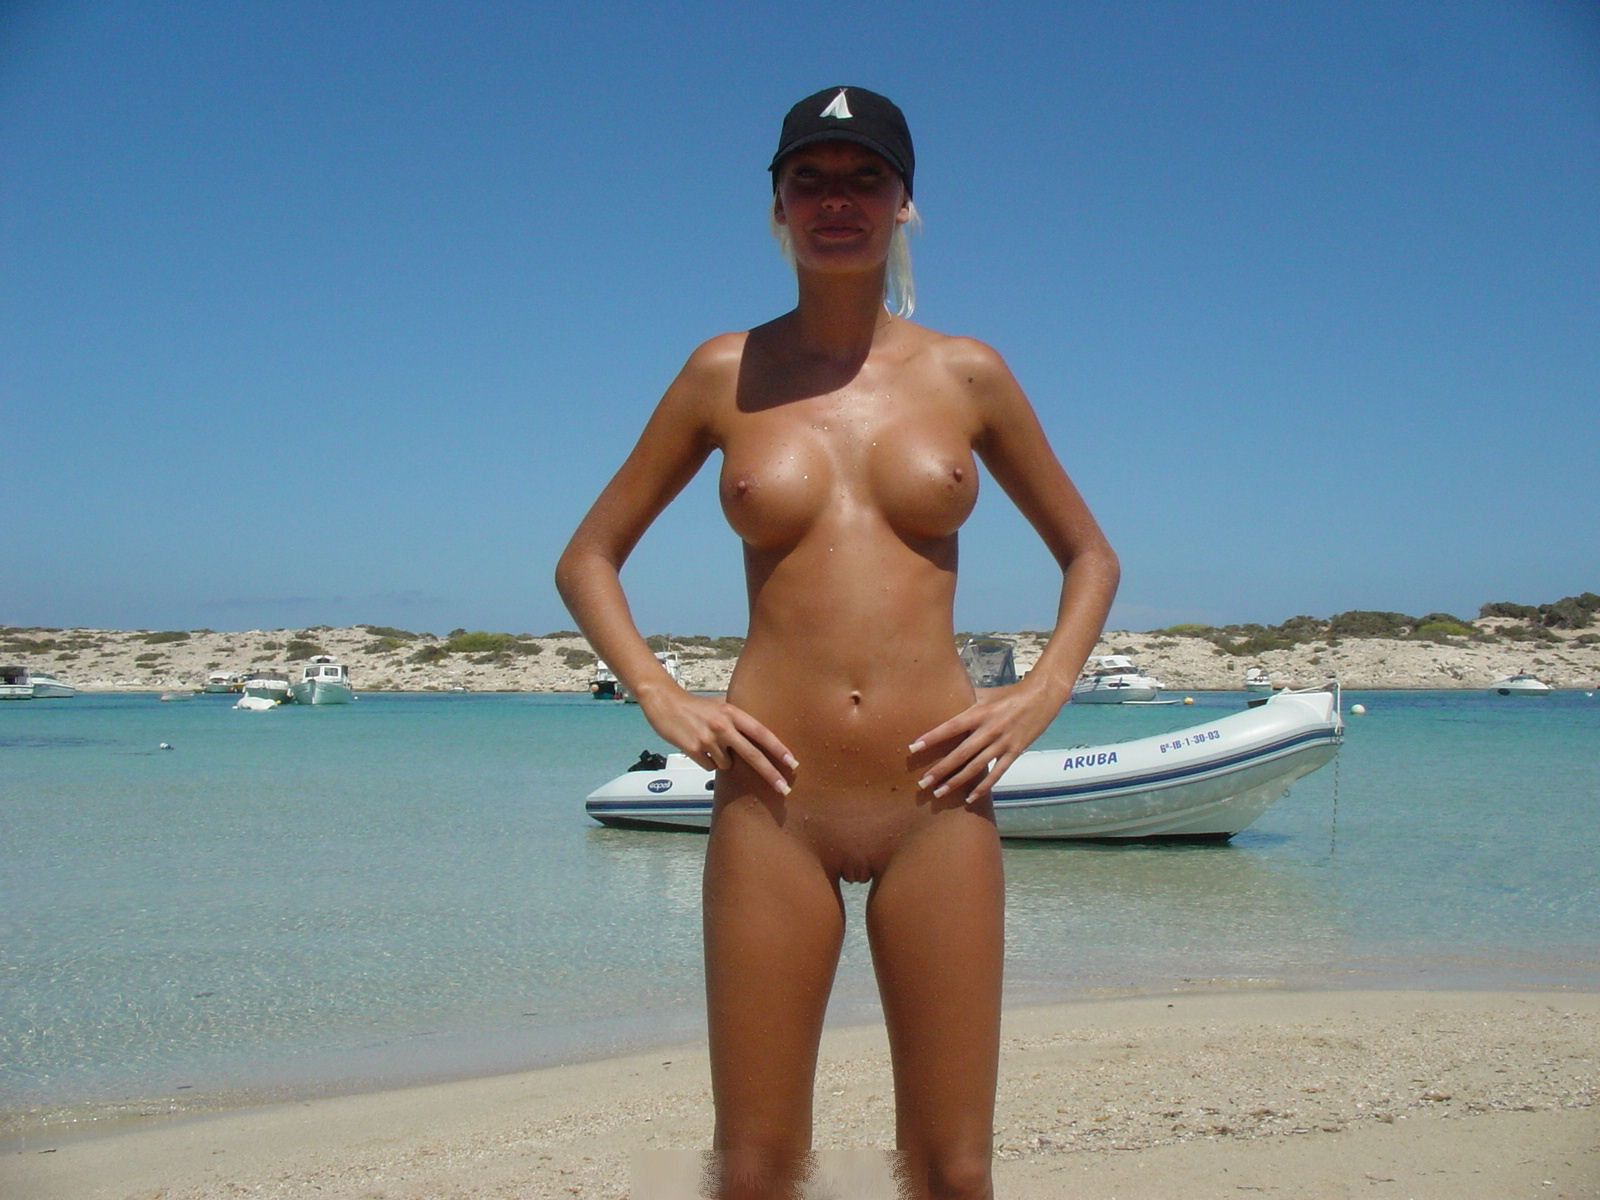 European nude beauty amateur